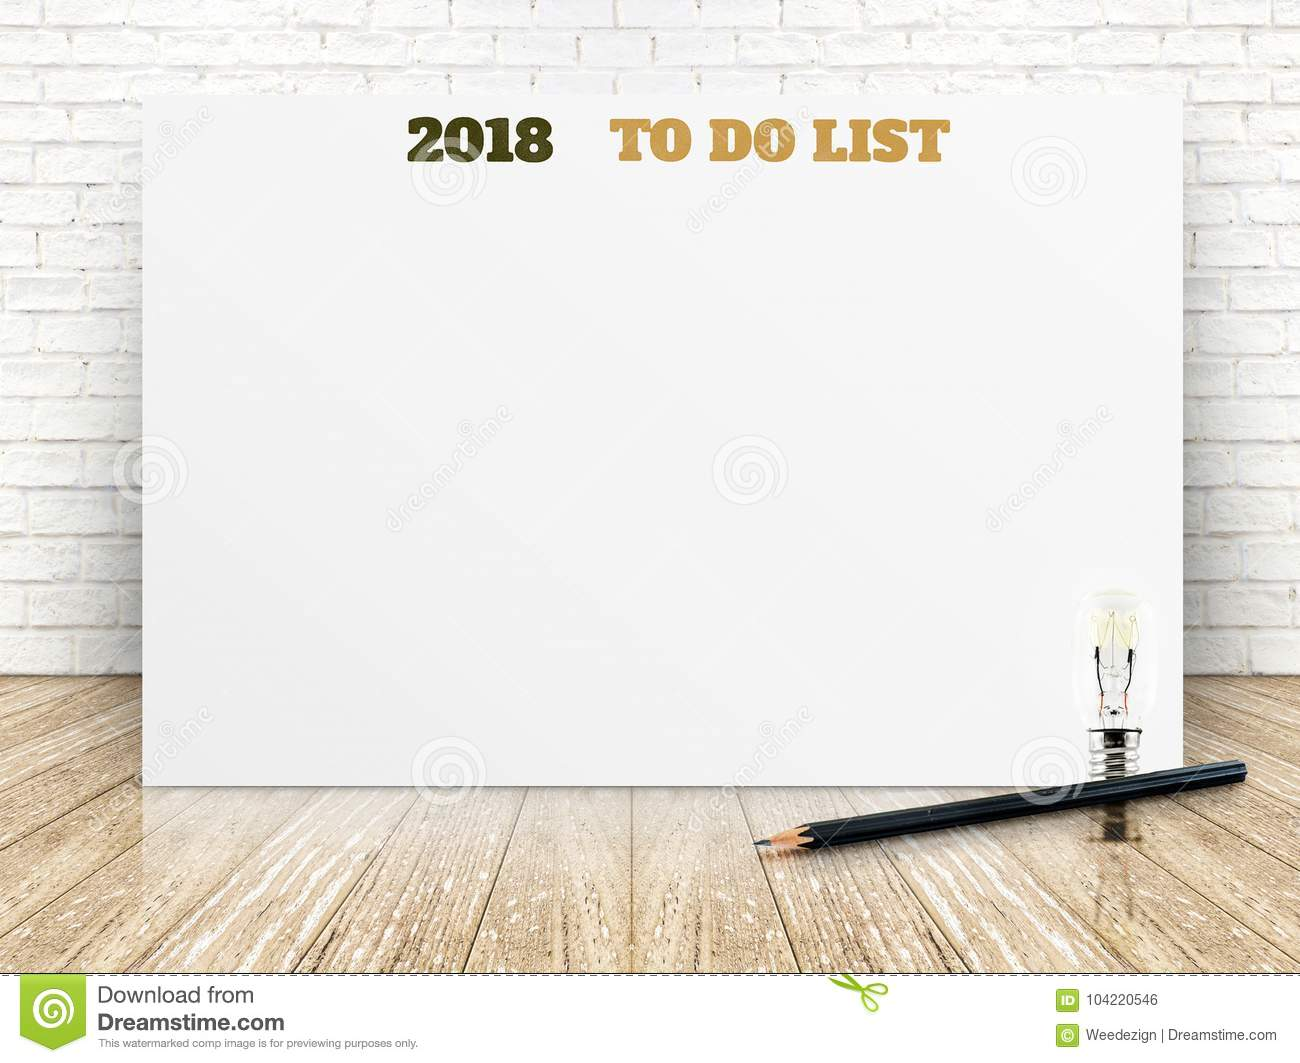 2018 to do list on white paper poster on white marble room wall